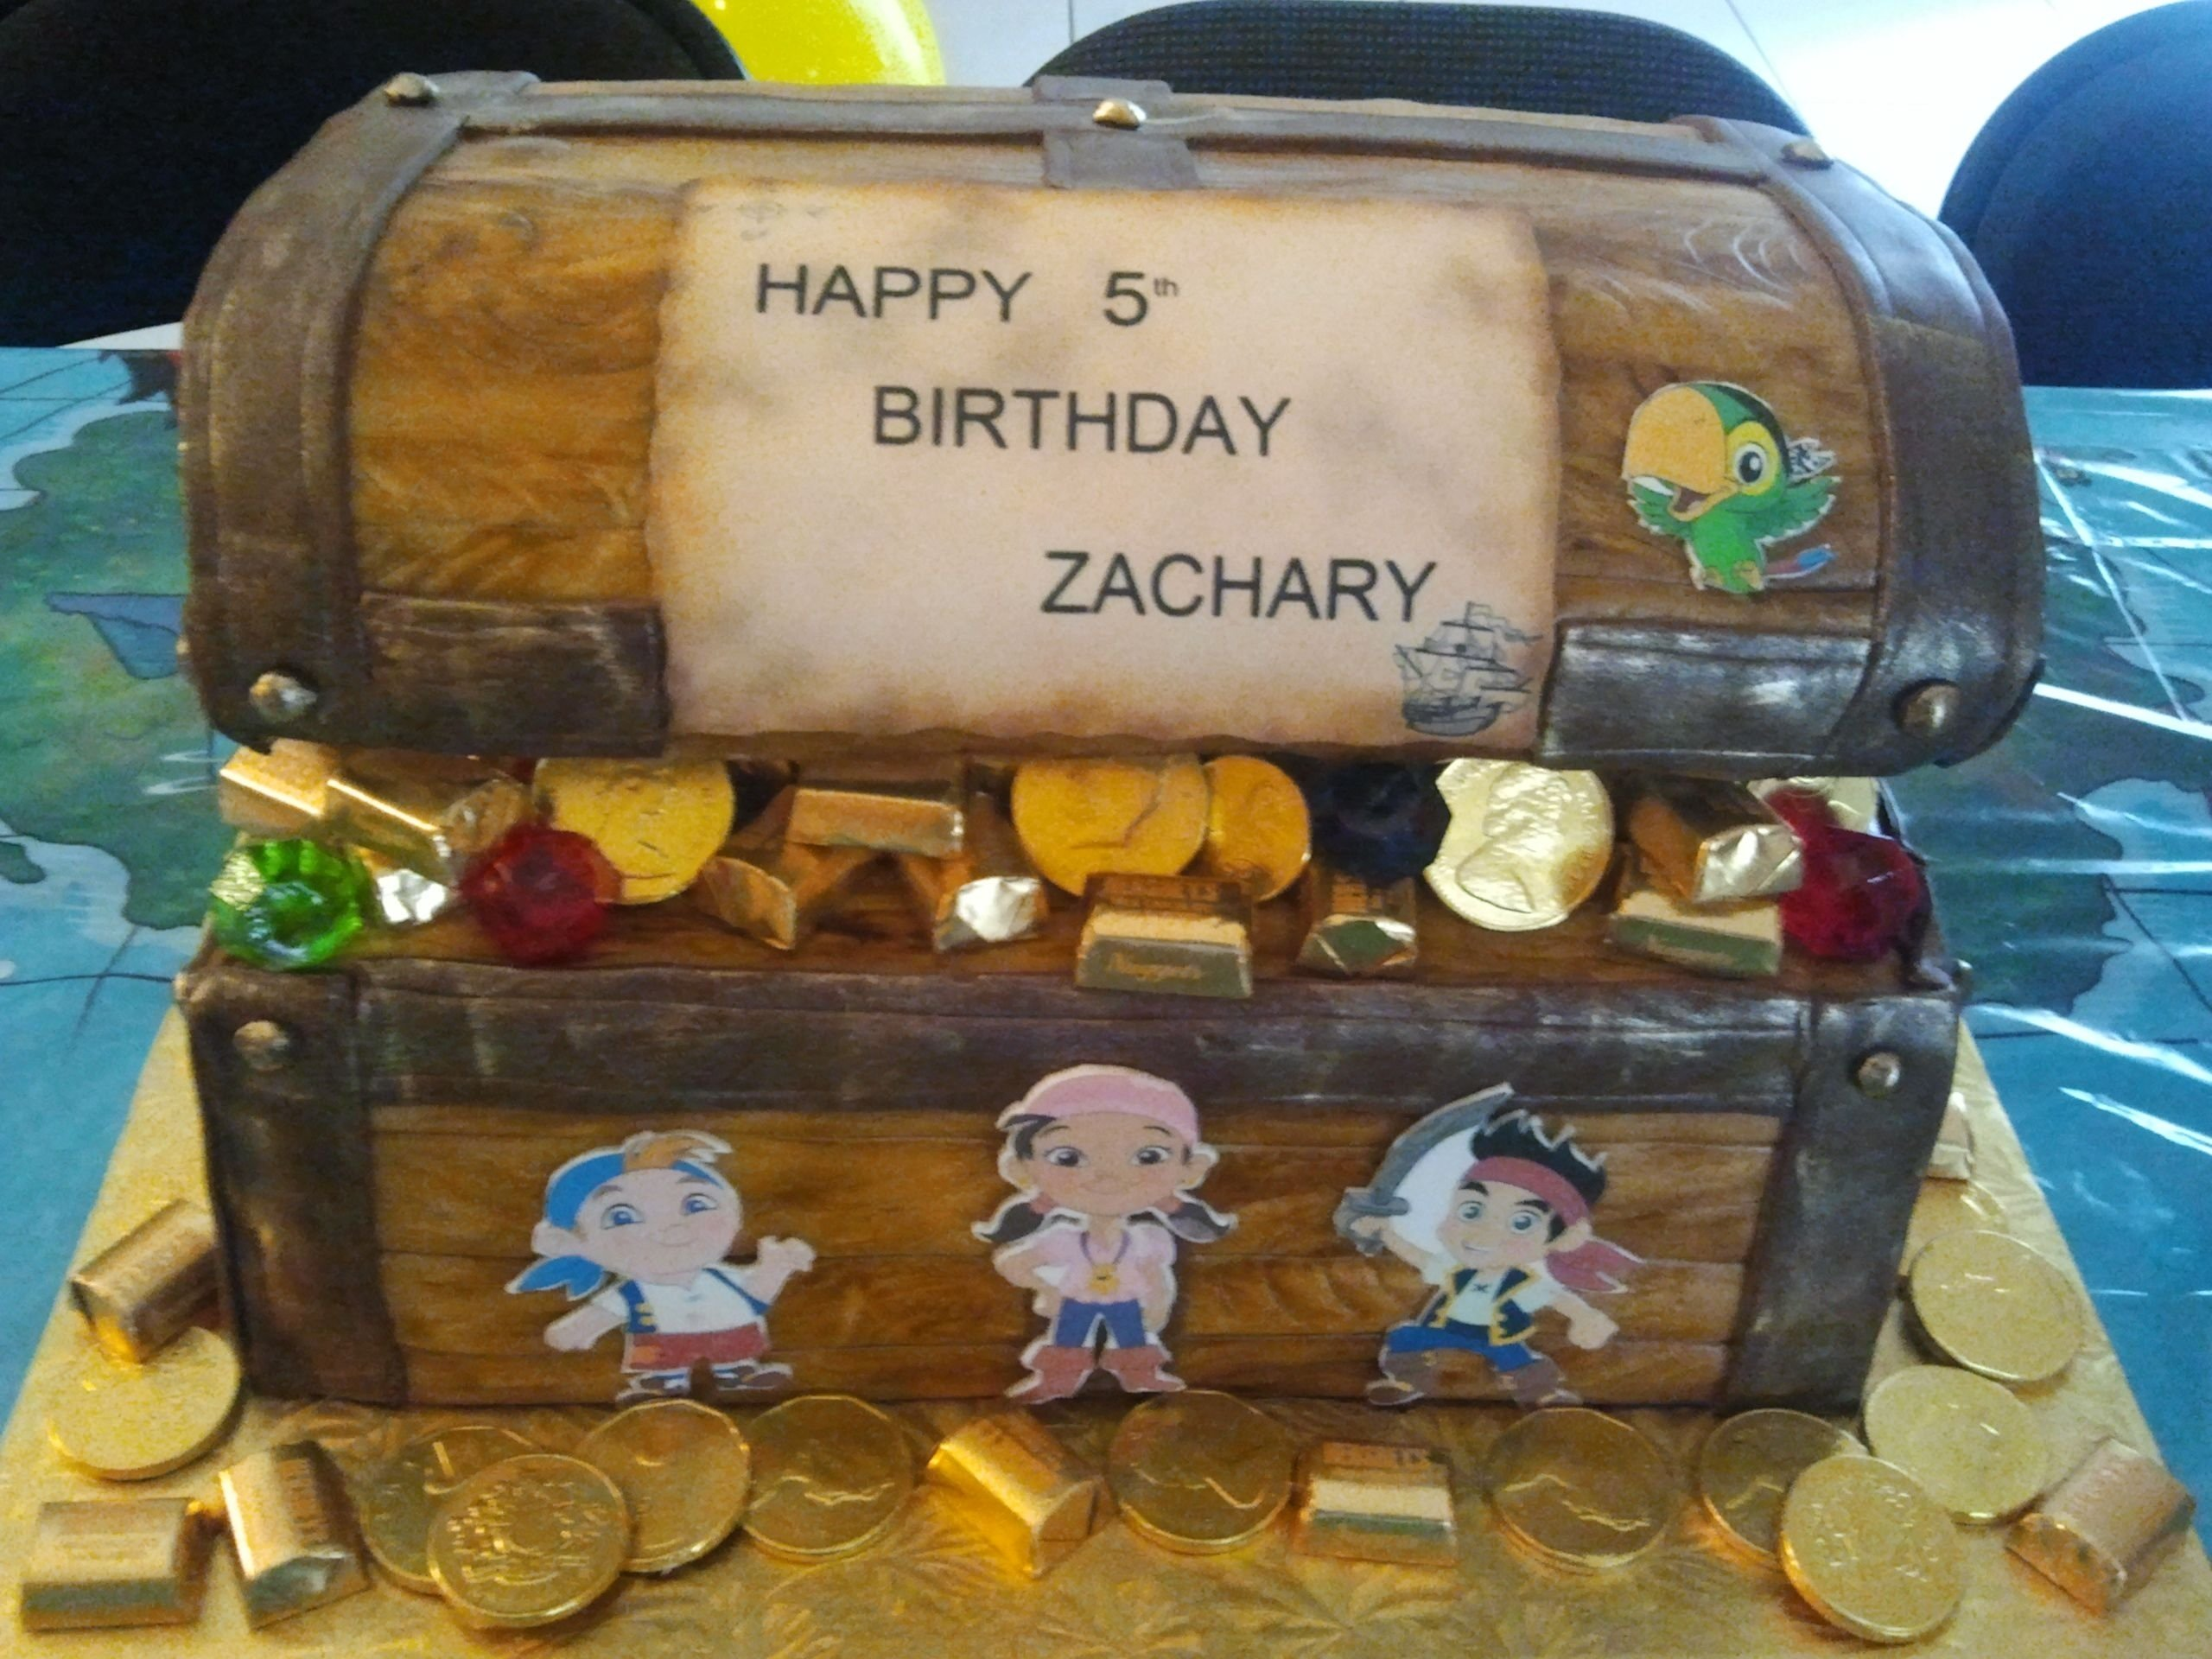 10 Awesome Jake And The Neverland Pirate Party Ideas jake and the neverland pirates cake cute idea for party favors and 2020